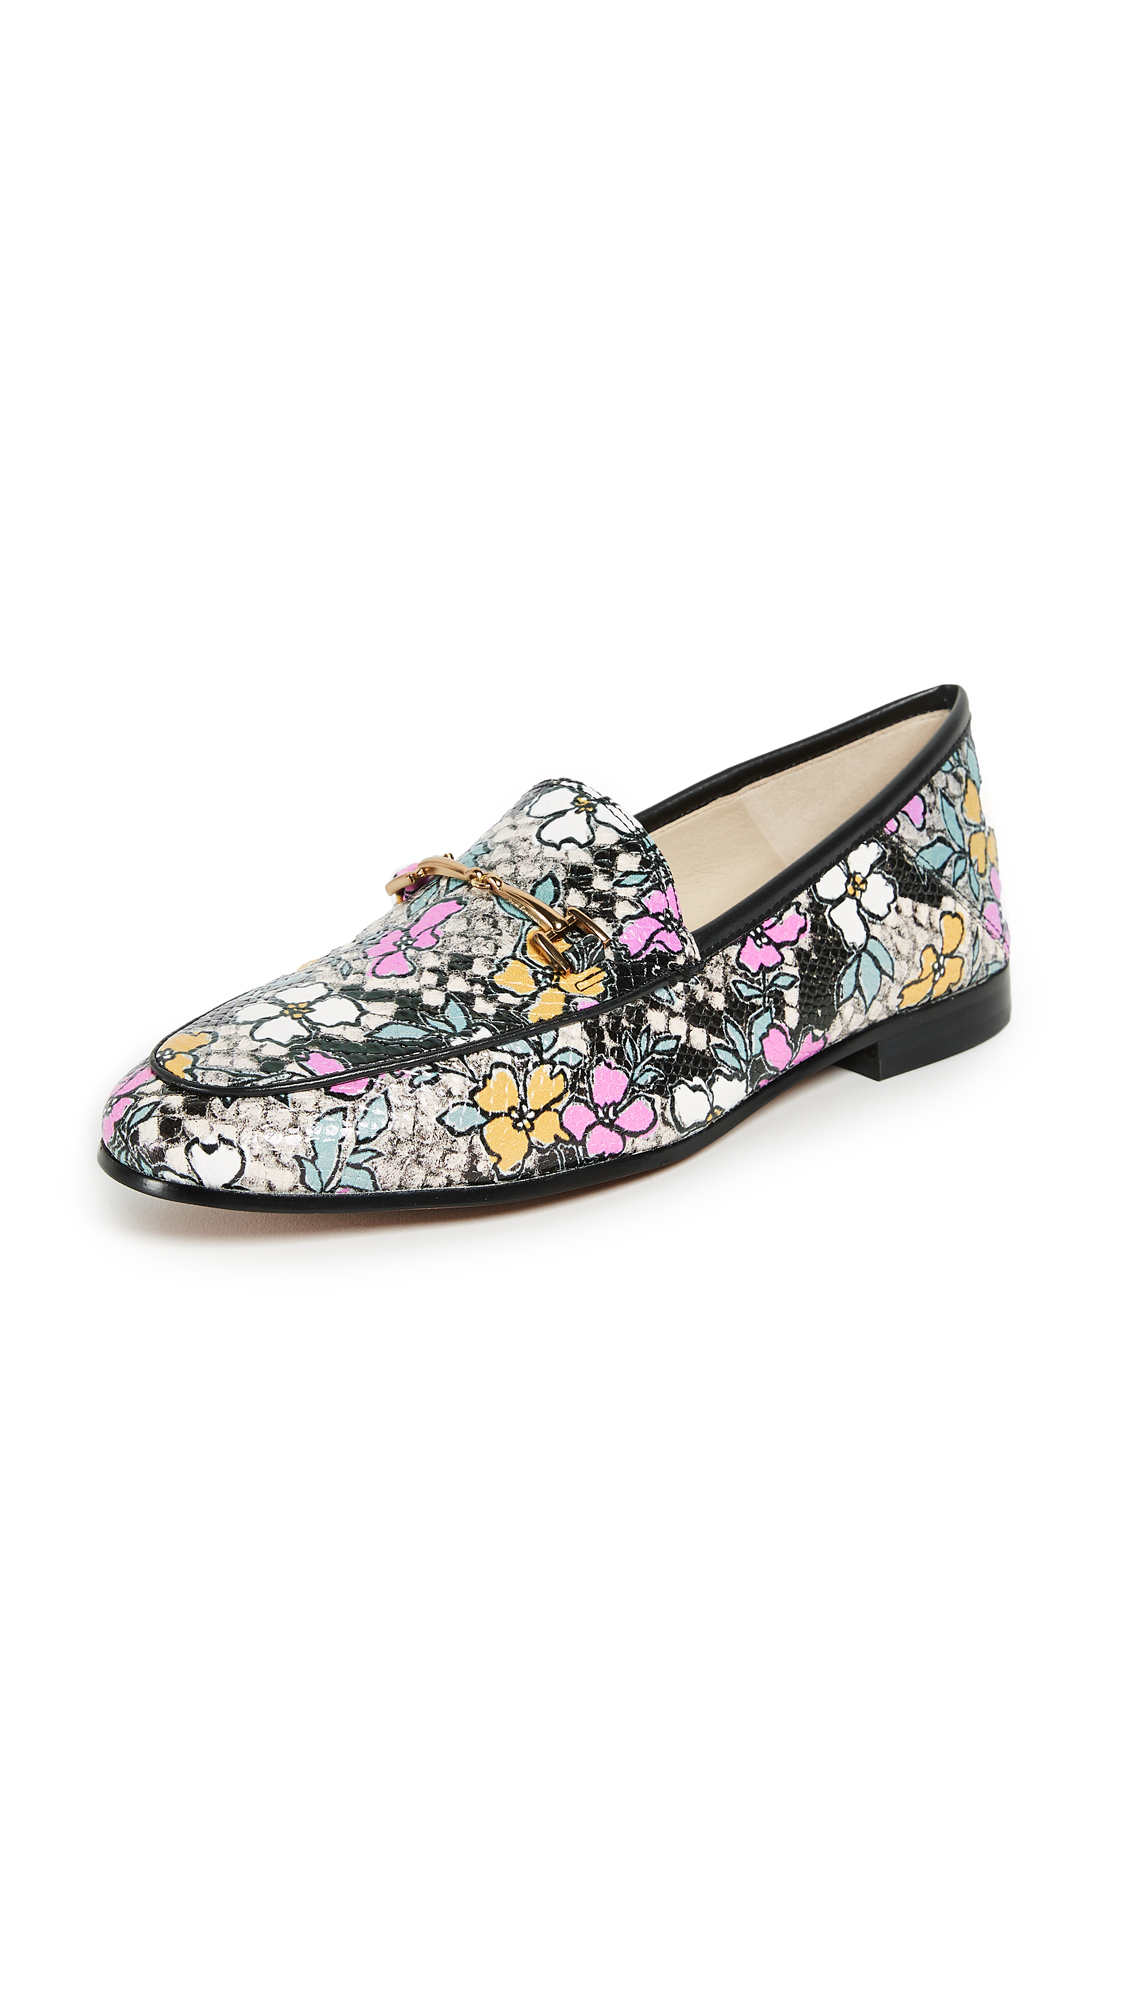 Sam Edelman Loraine Loafers - Bright Multi/Black